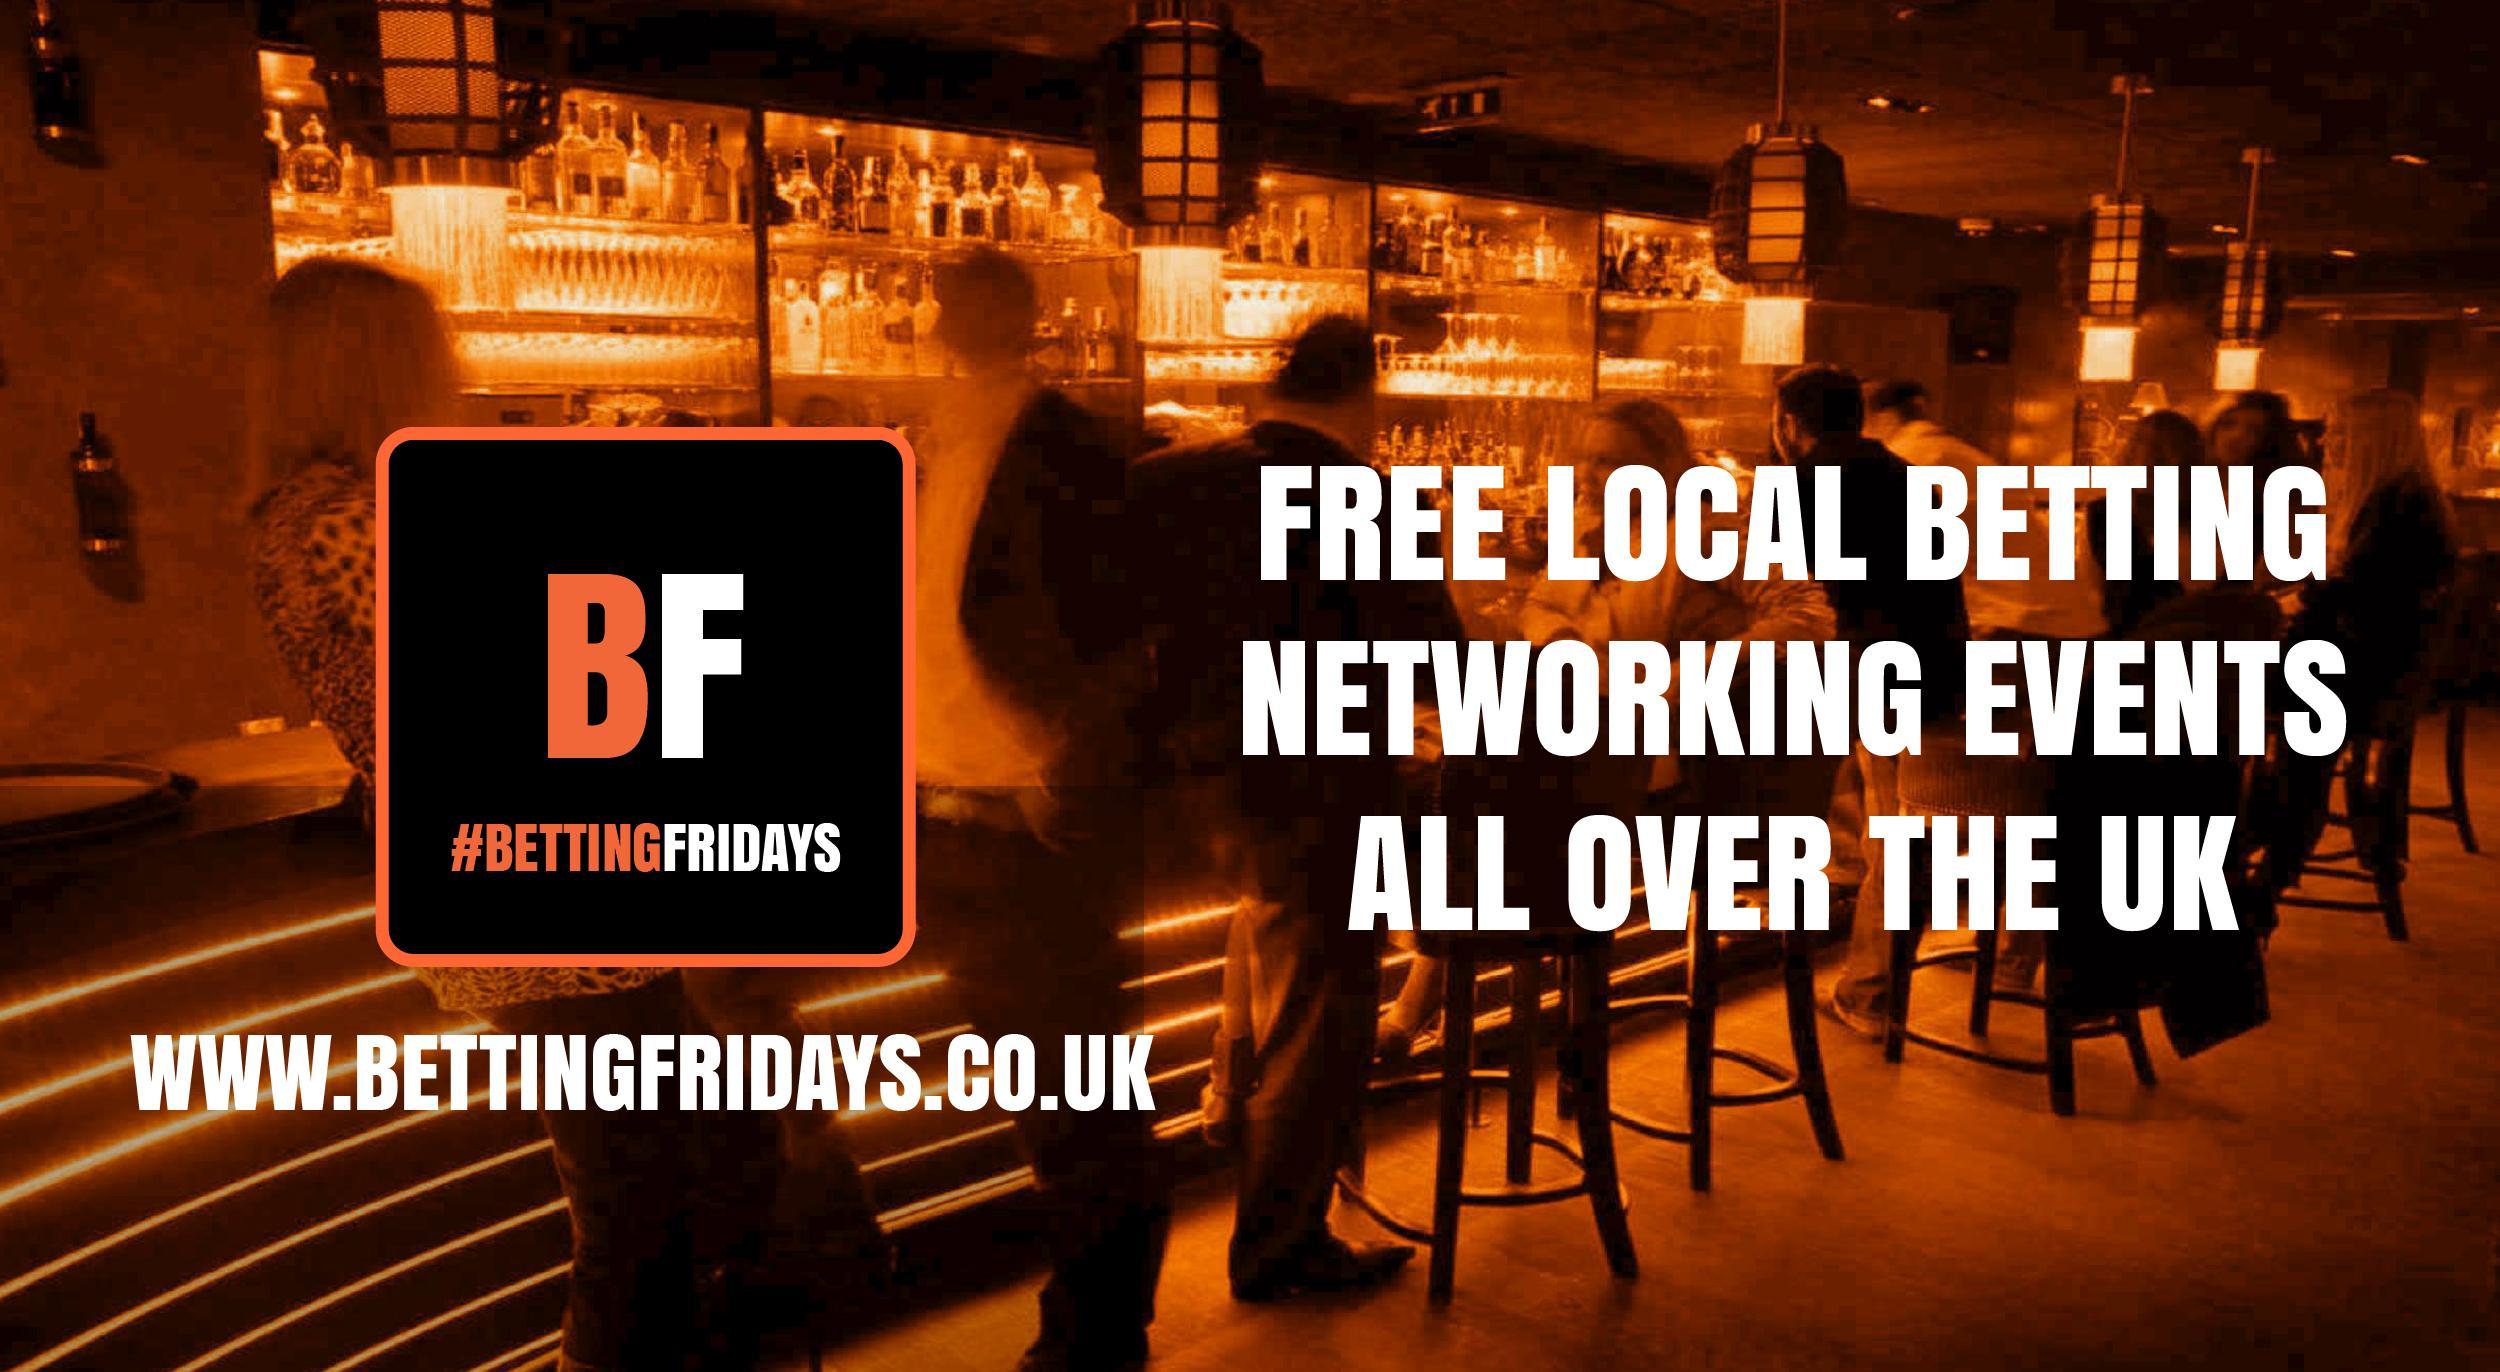 Betting Fridays! Free betting networking event in Hammersmith